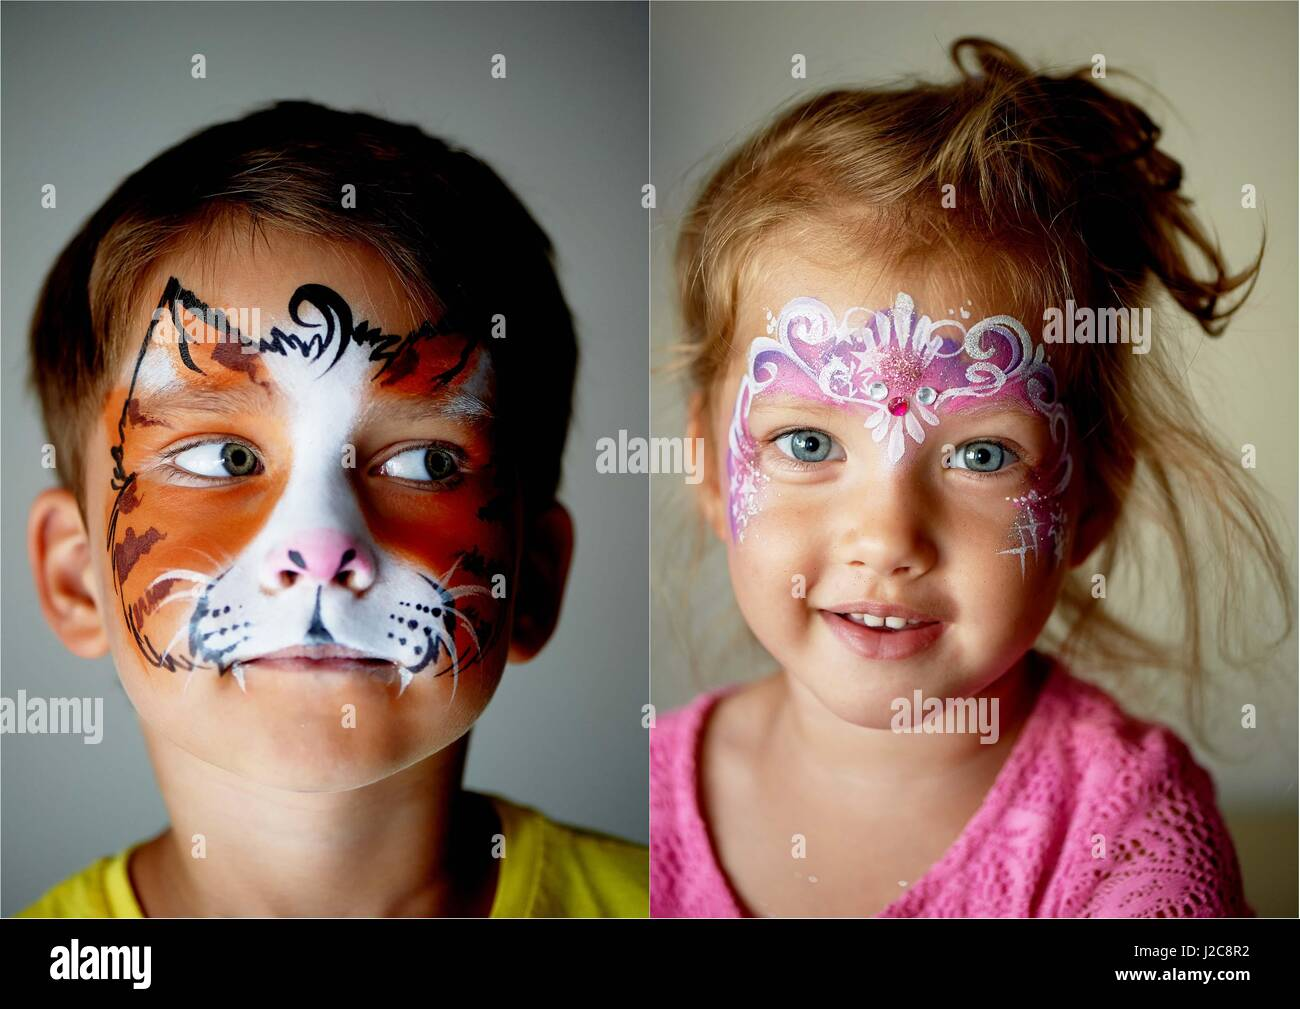 6 years old boy with blue eyes face painting of a cat or tiger pretty stock photo 139182598 alamy. Black Bedroom Furniture Sets. Home Design Ideas